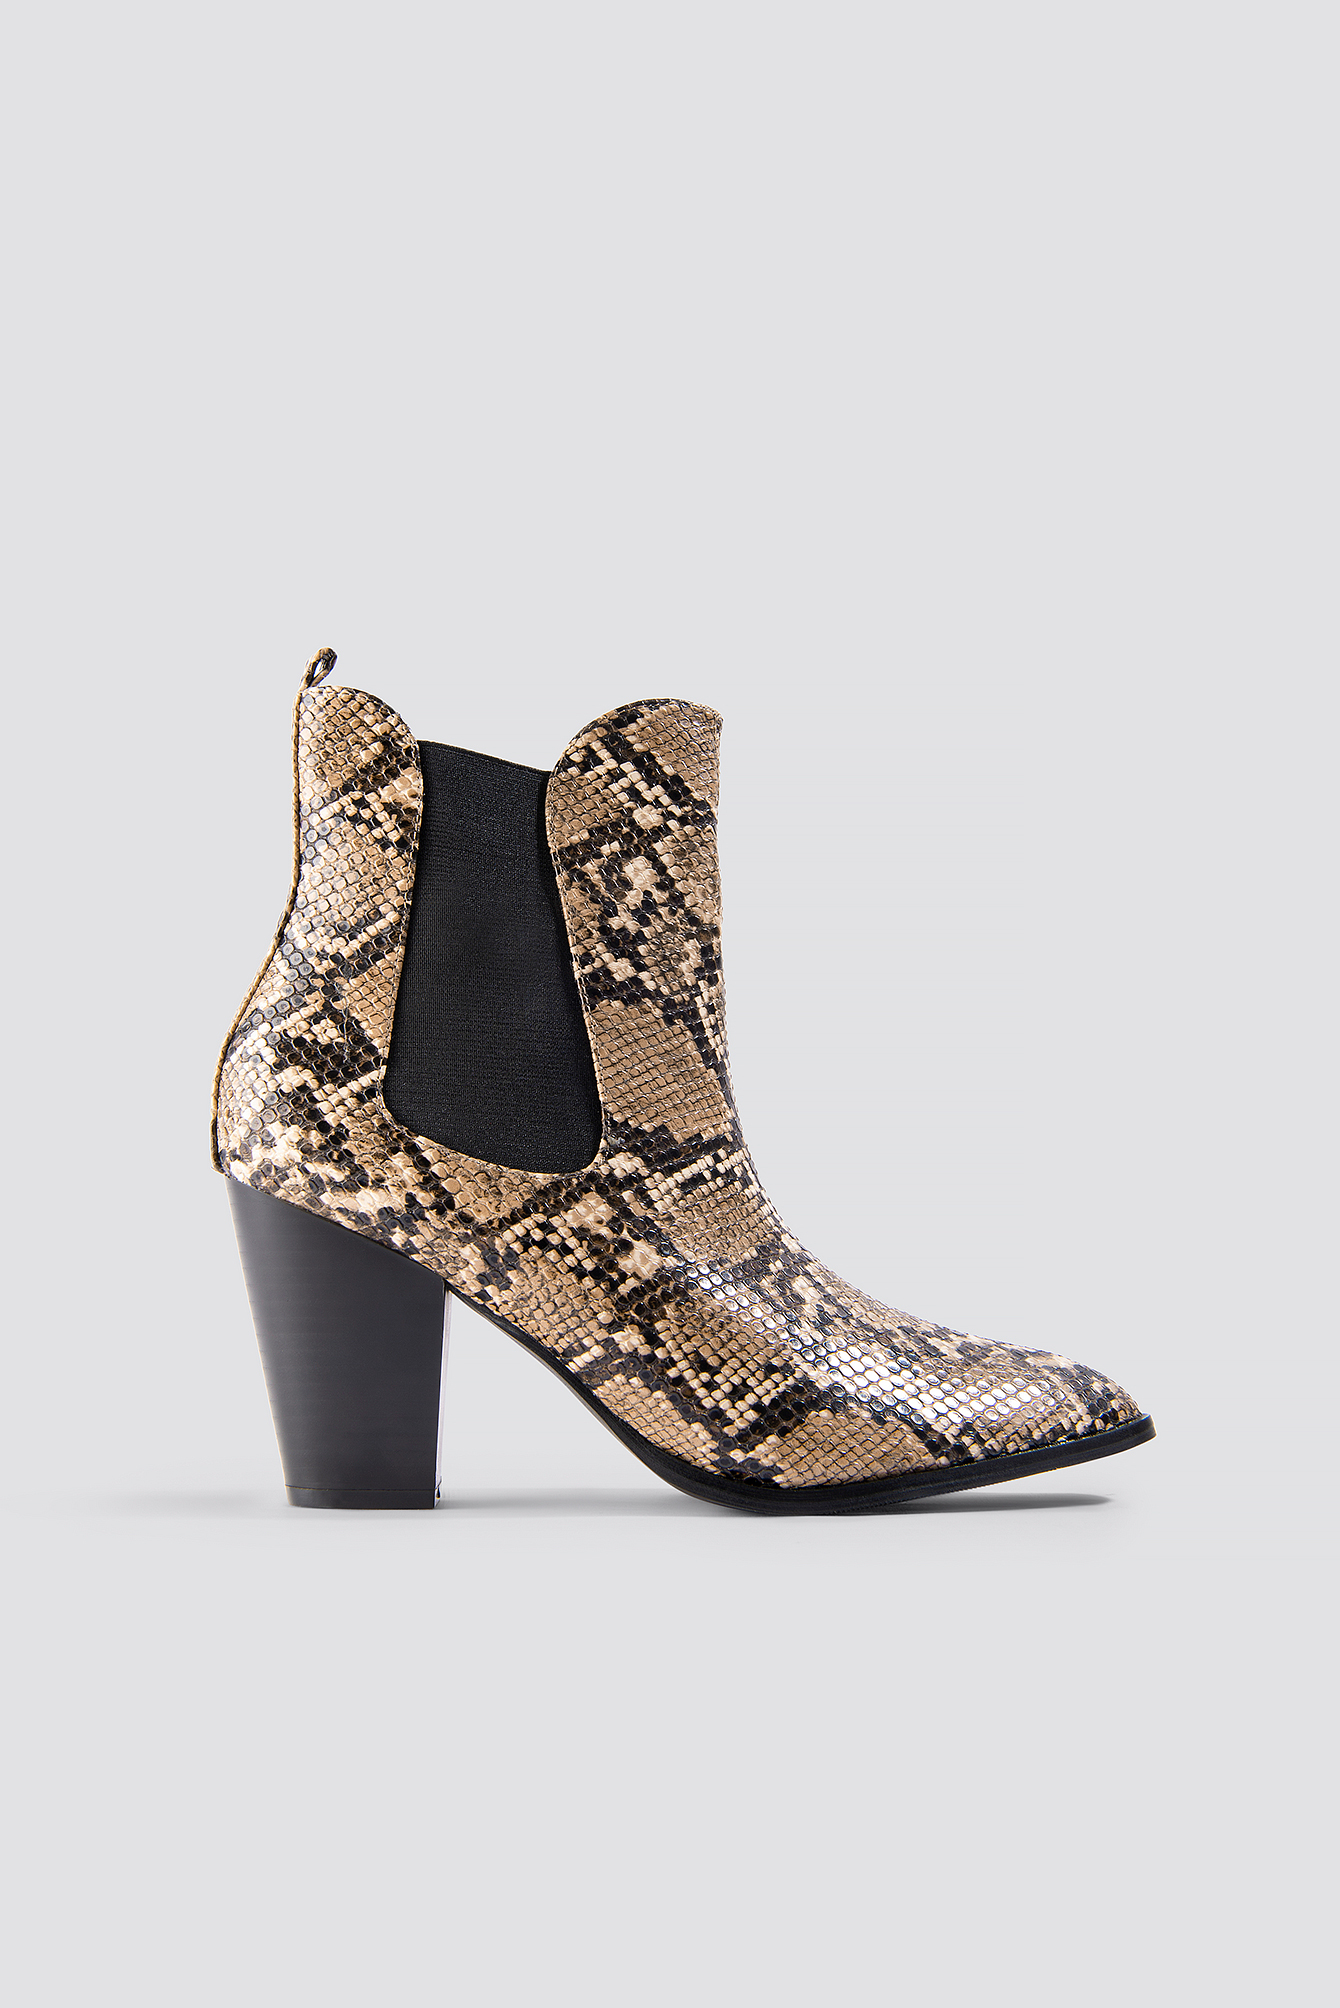 na-kd shoes -  High Heel PU Boot - Brown,Multicolor